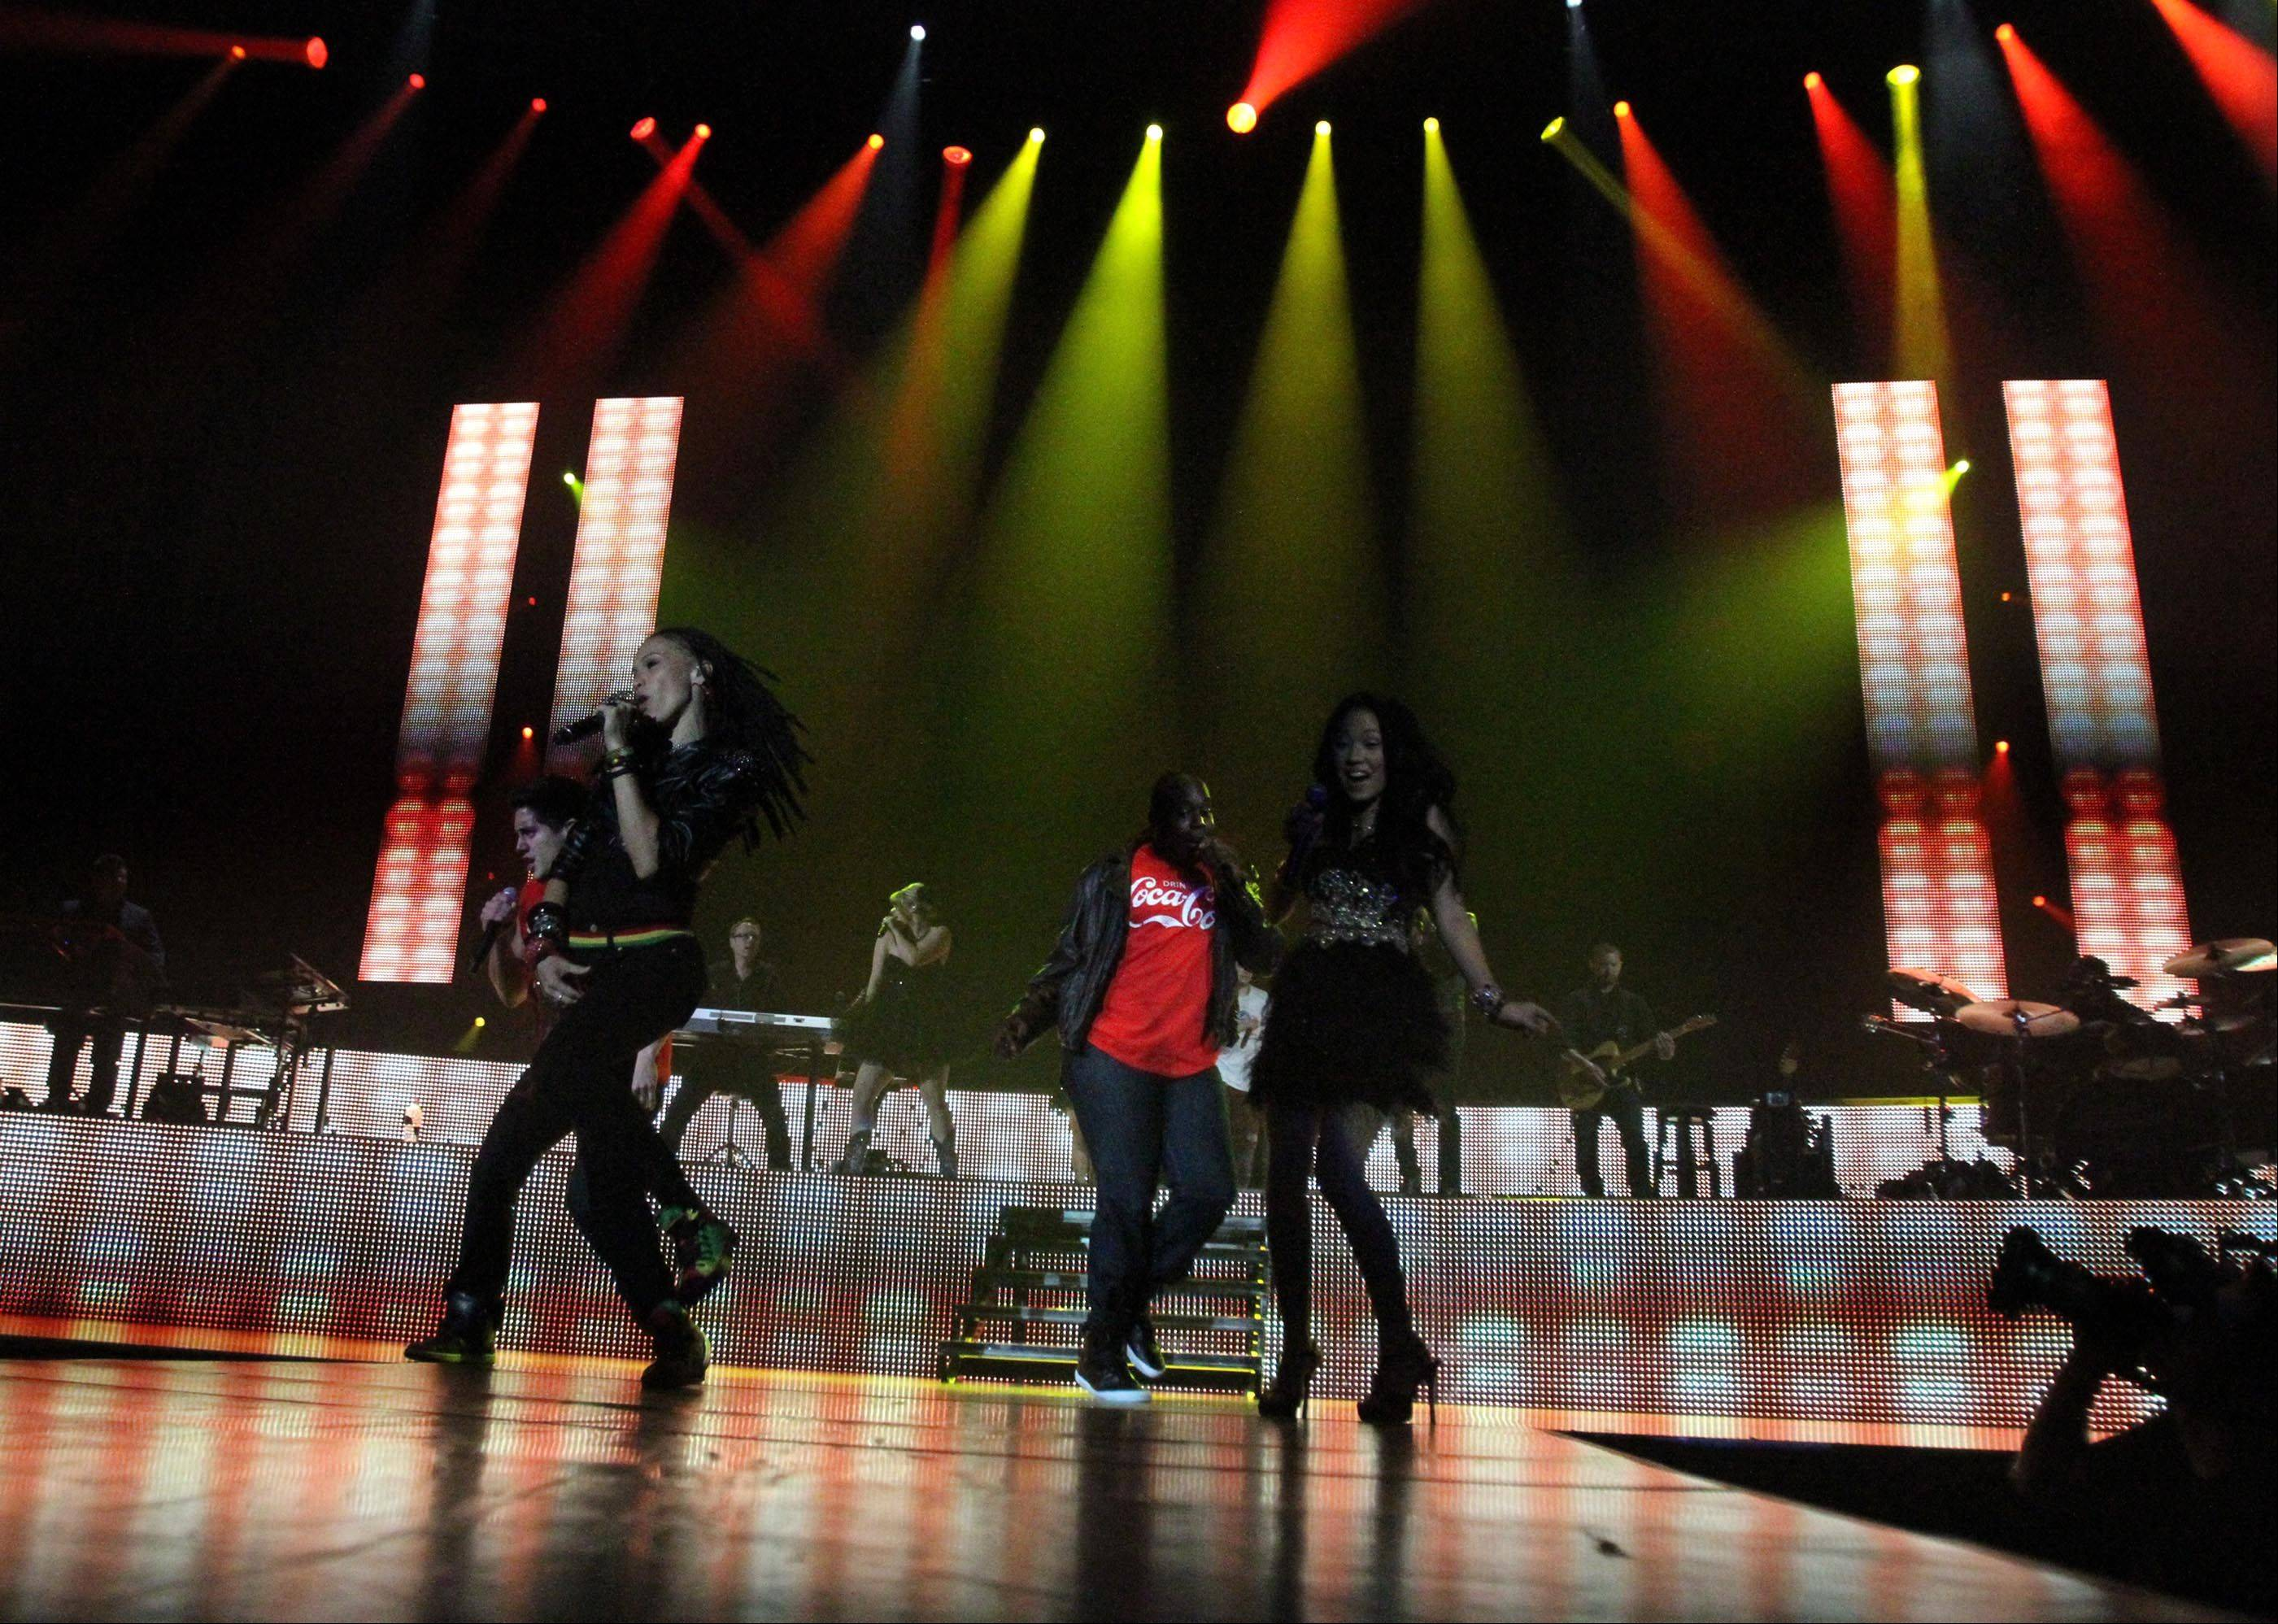 All the American Idol finalists perform.